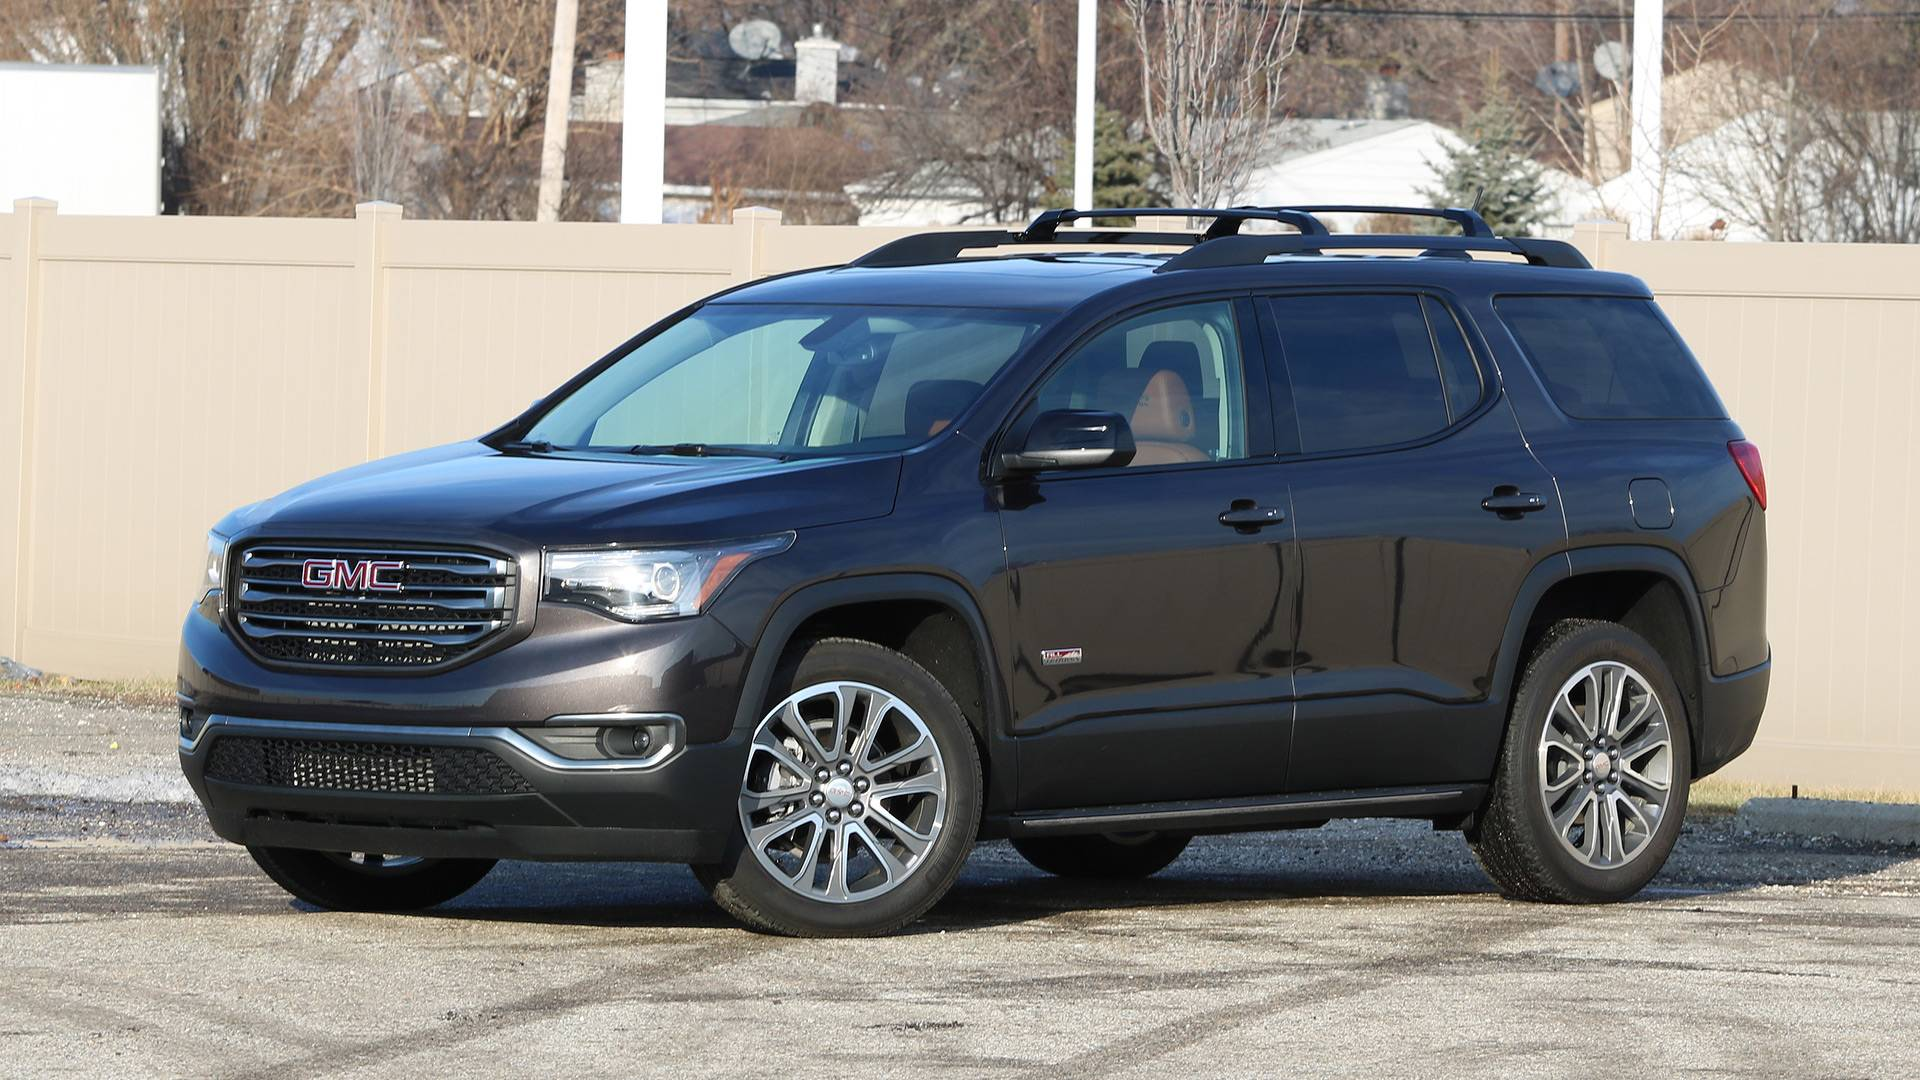 2018 GMC Acadia Review: The Premium Choice